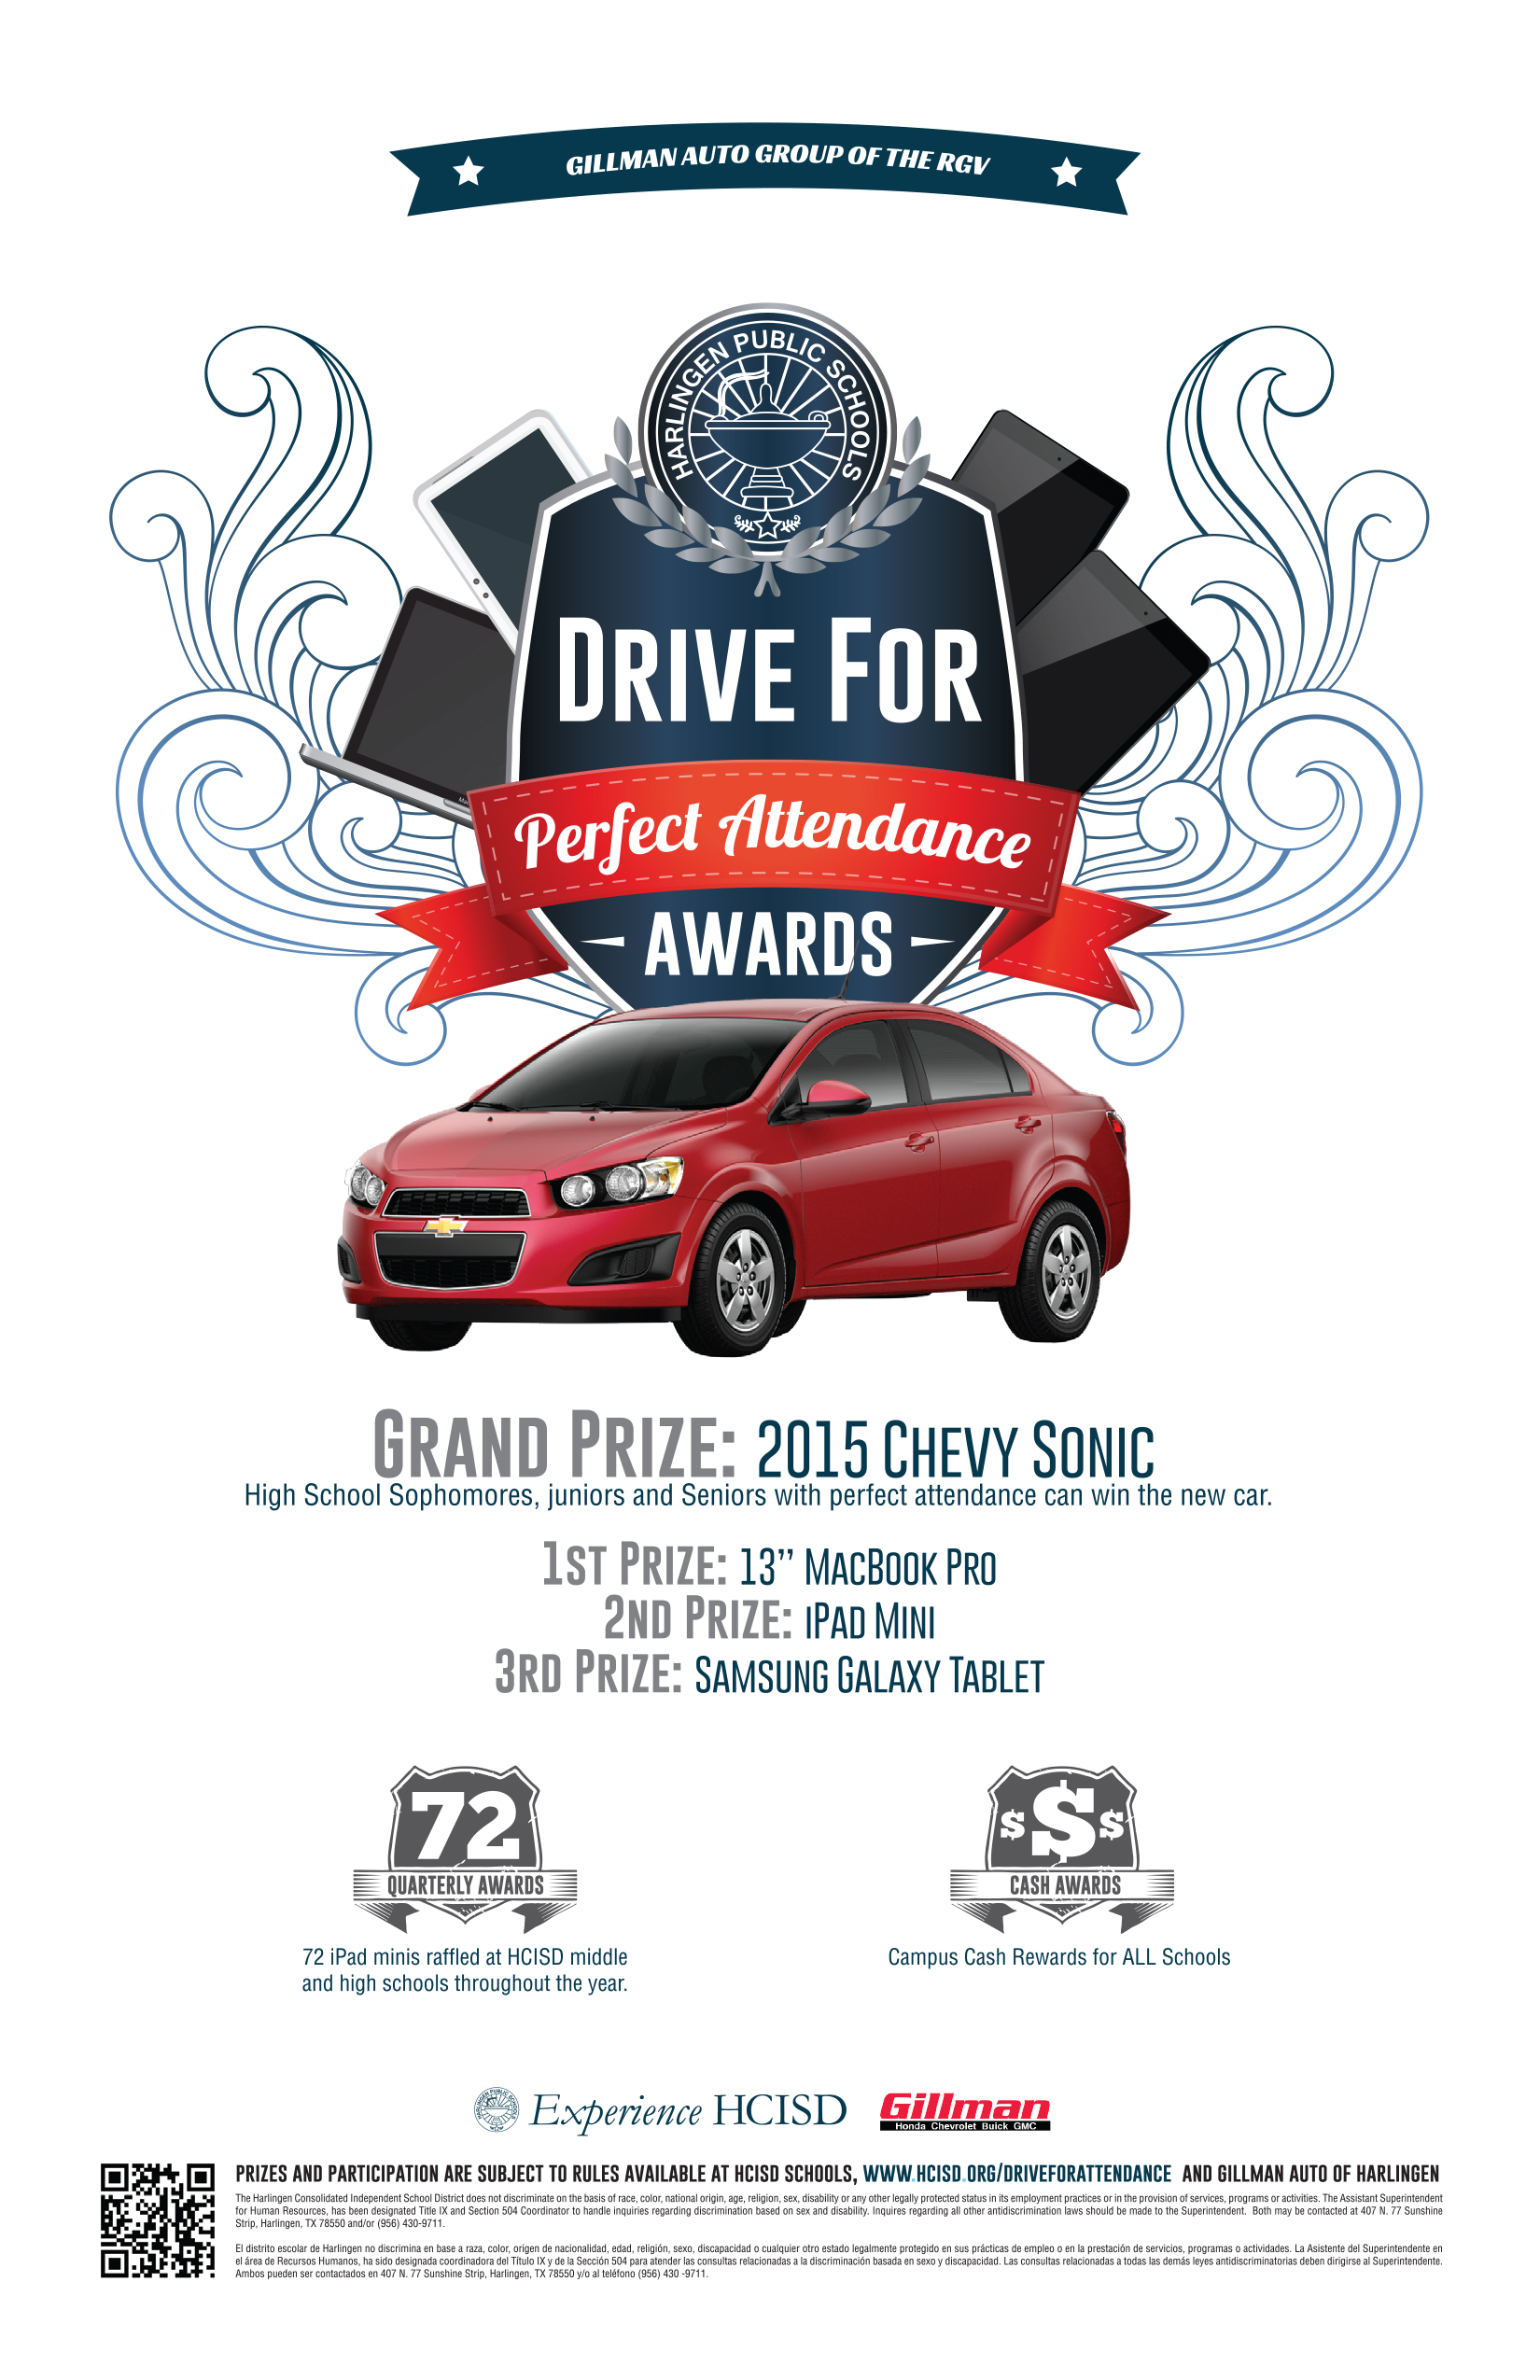 HCISD Sophomores Now Eligible for Drive for Perfect Attendance Awards